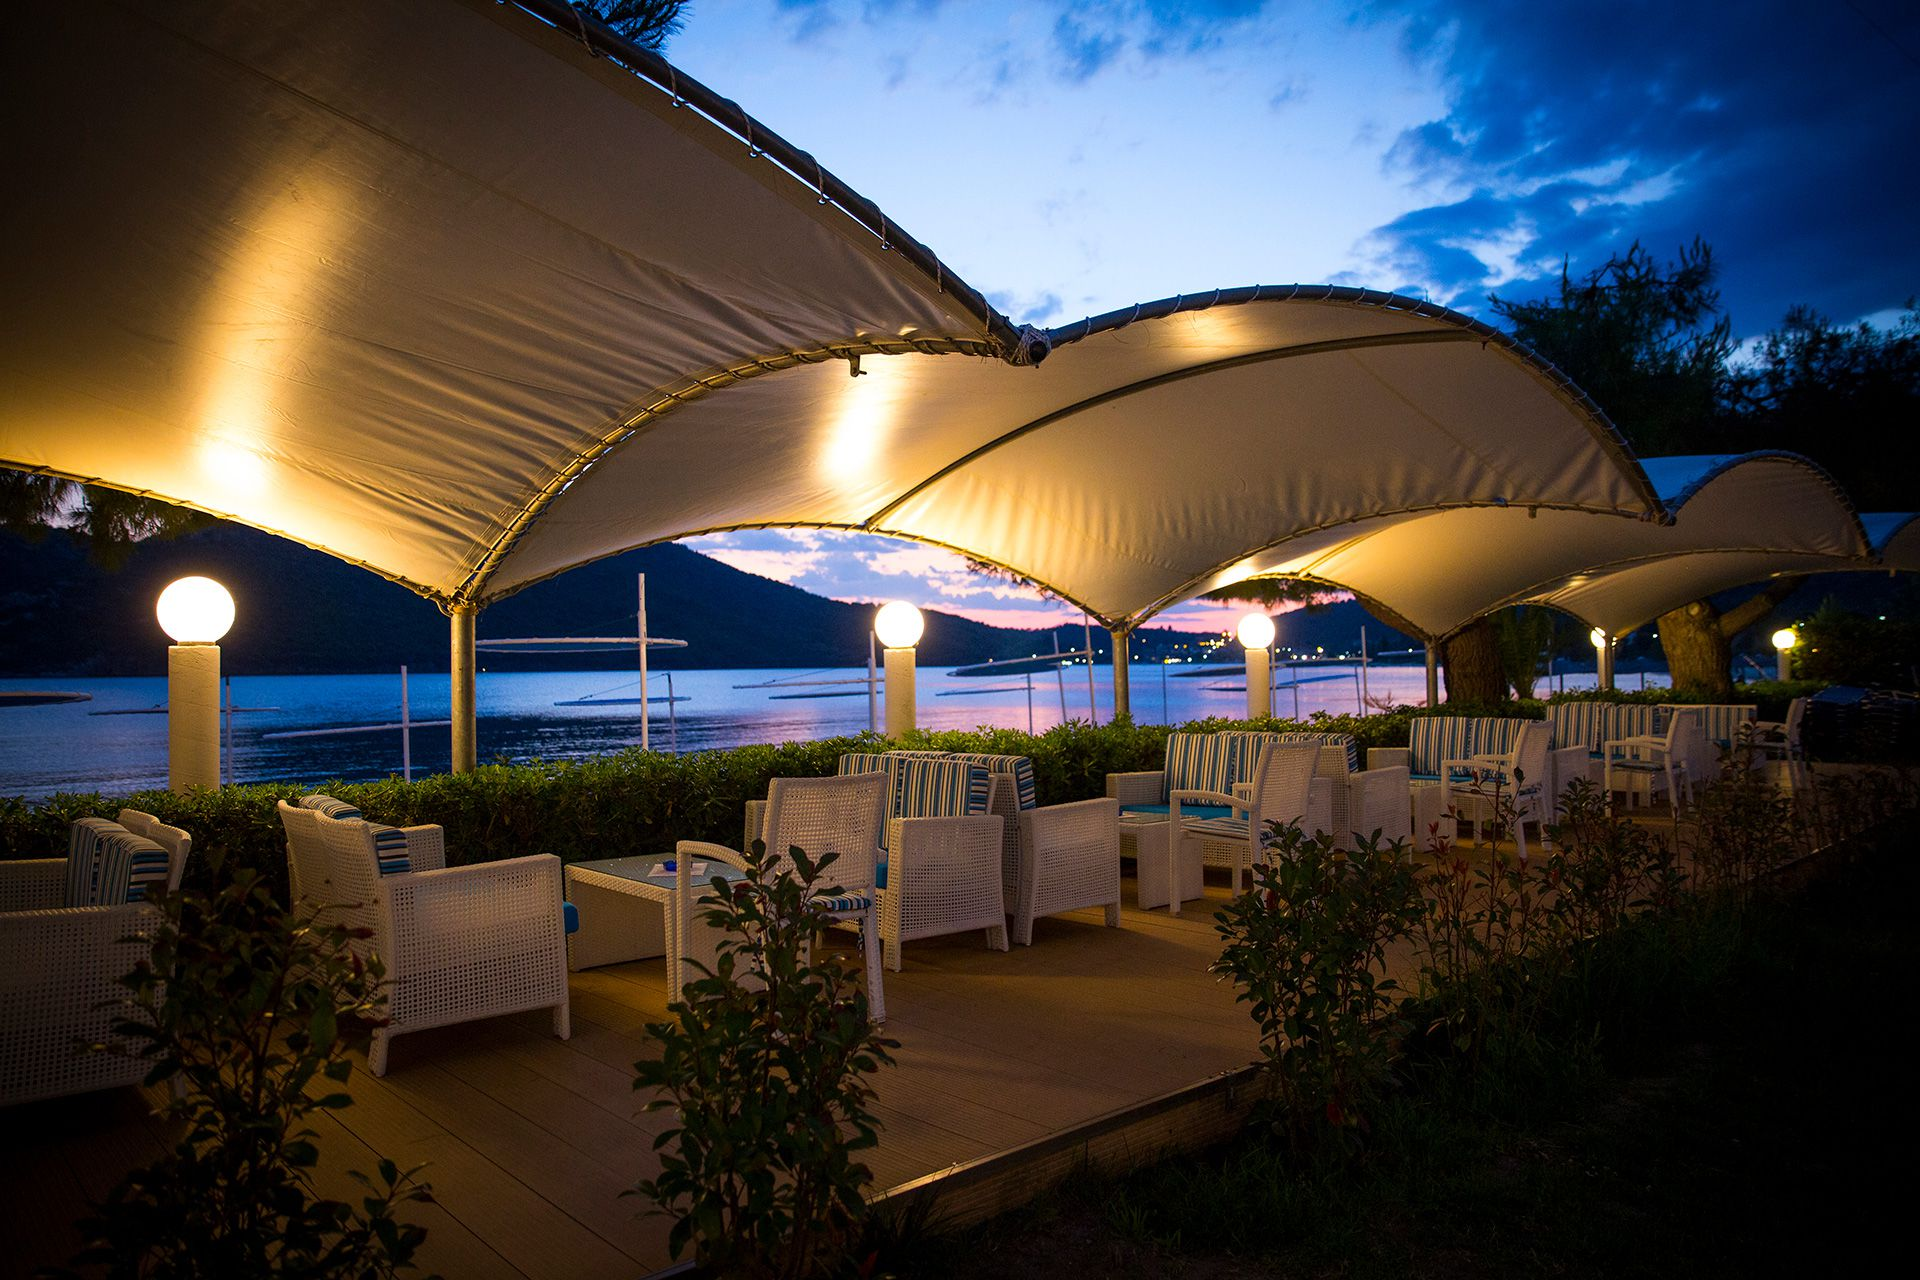 At the hotel Cafe Bar you can enjoy your evening drink while relaxing in front of the sea view.